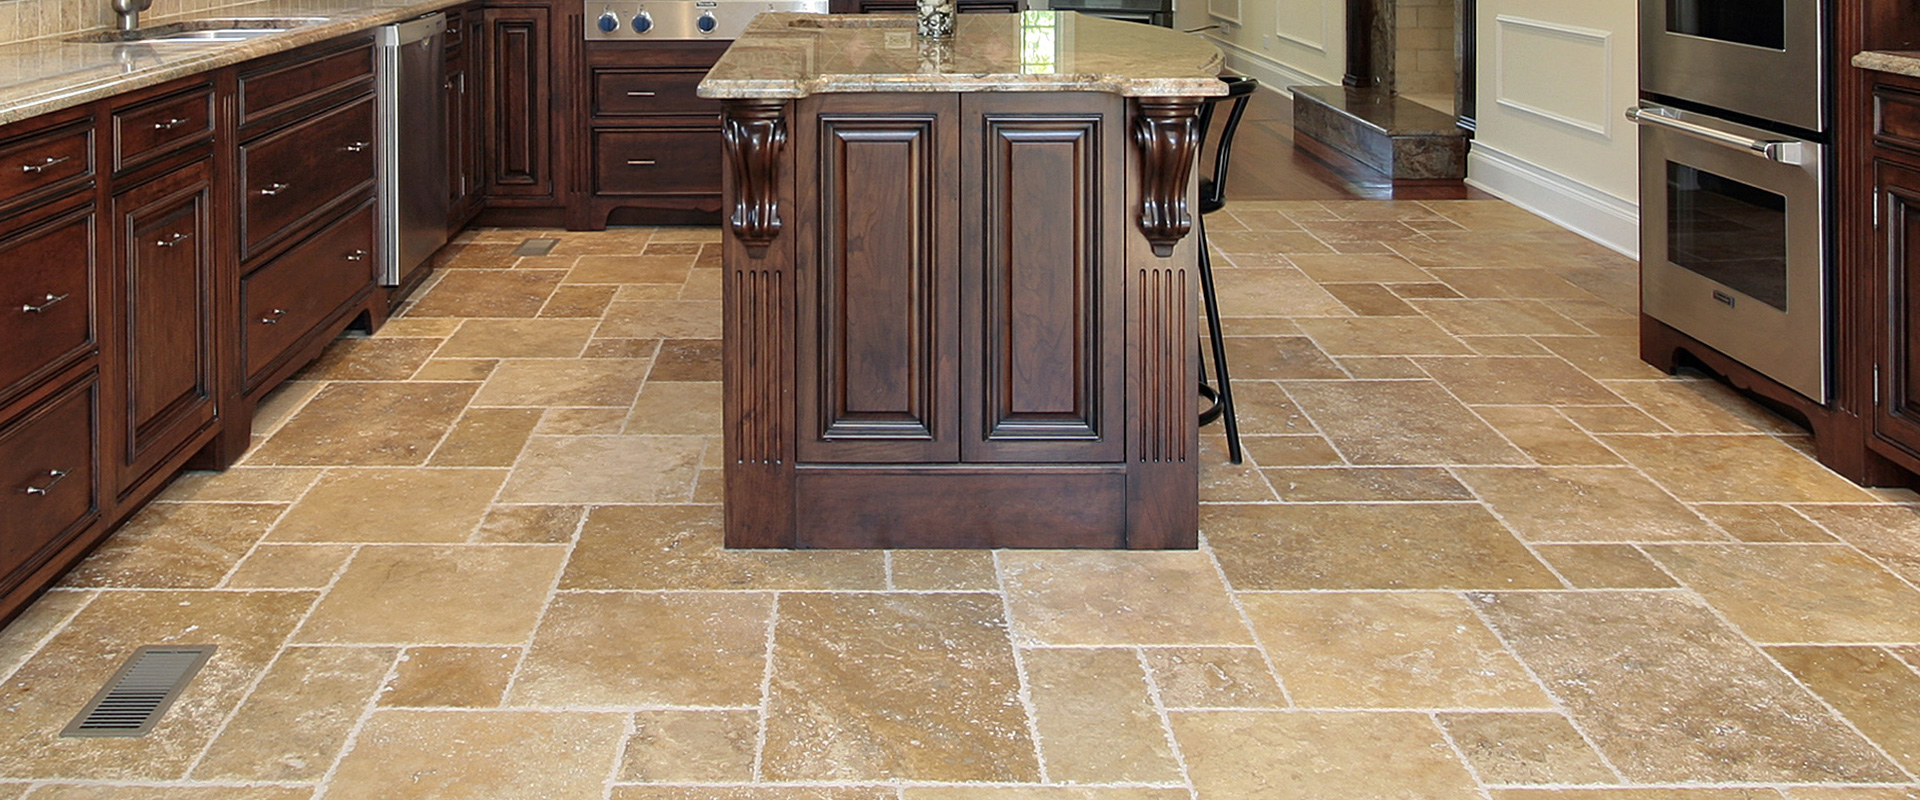 Flooring contractors laminate hardwoods tile flooring garden flooring contractors laminate hardwoods tile flooring garden city boise id dailygadgetfo Choice Image